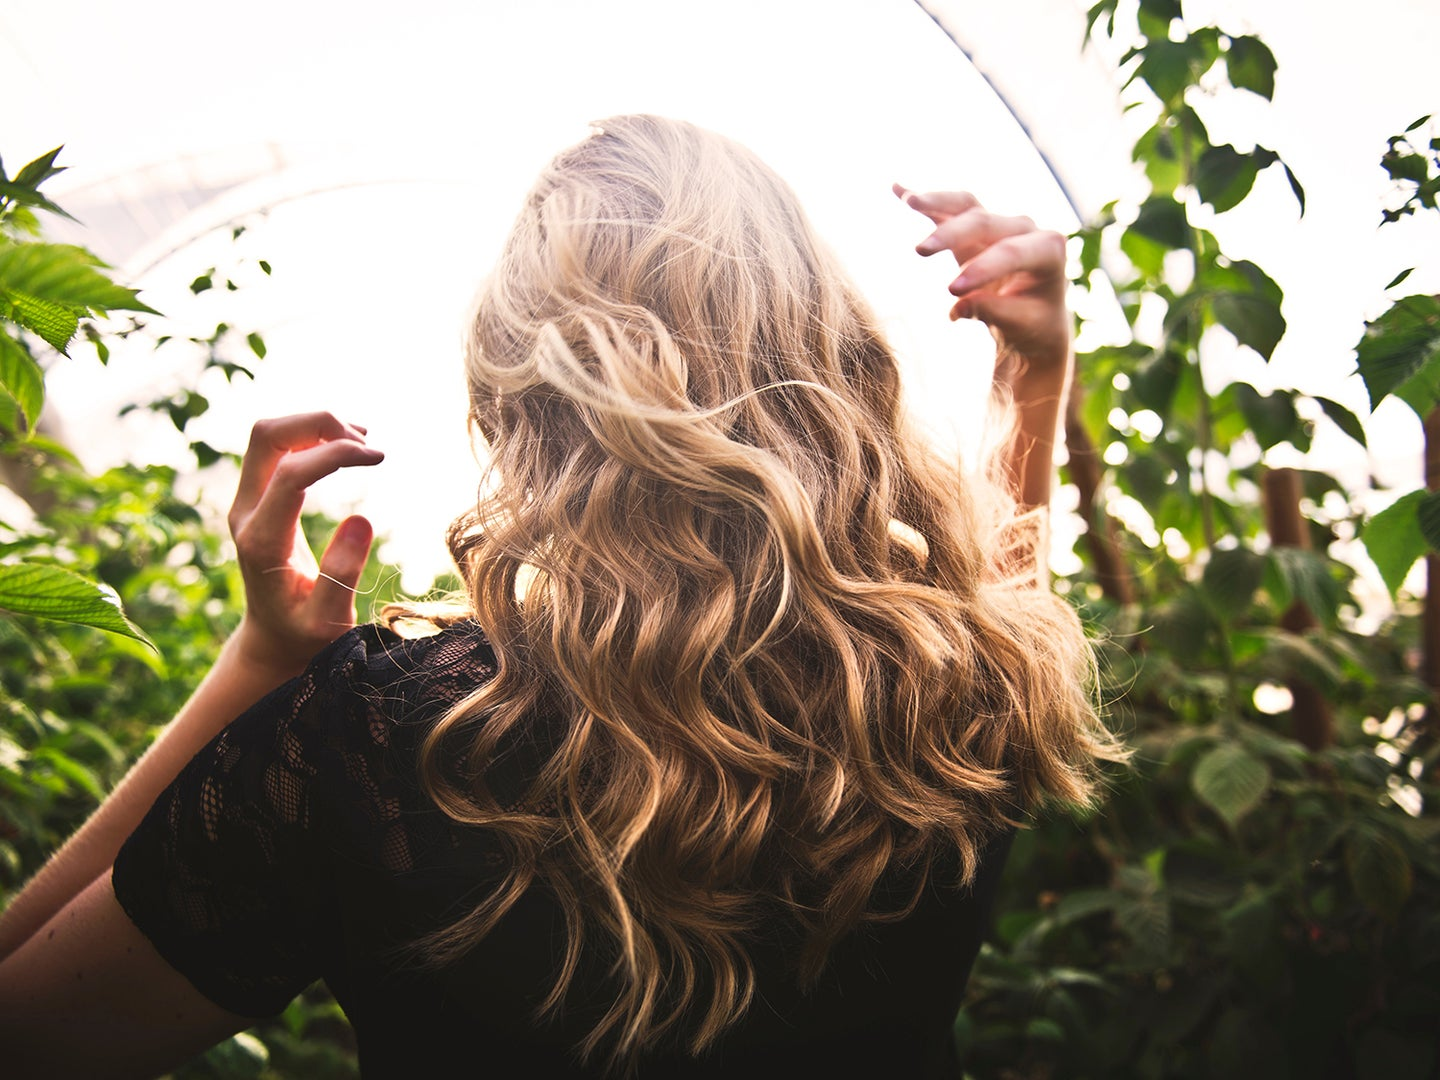 Woman playing with curly hair